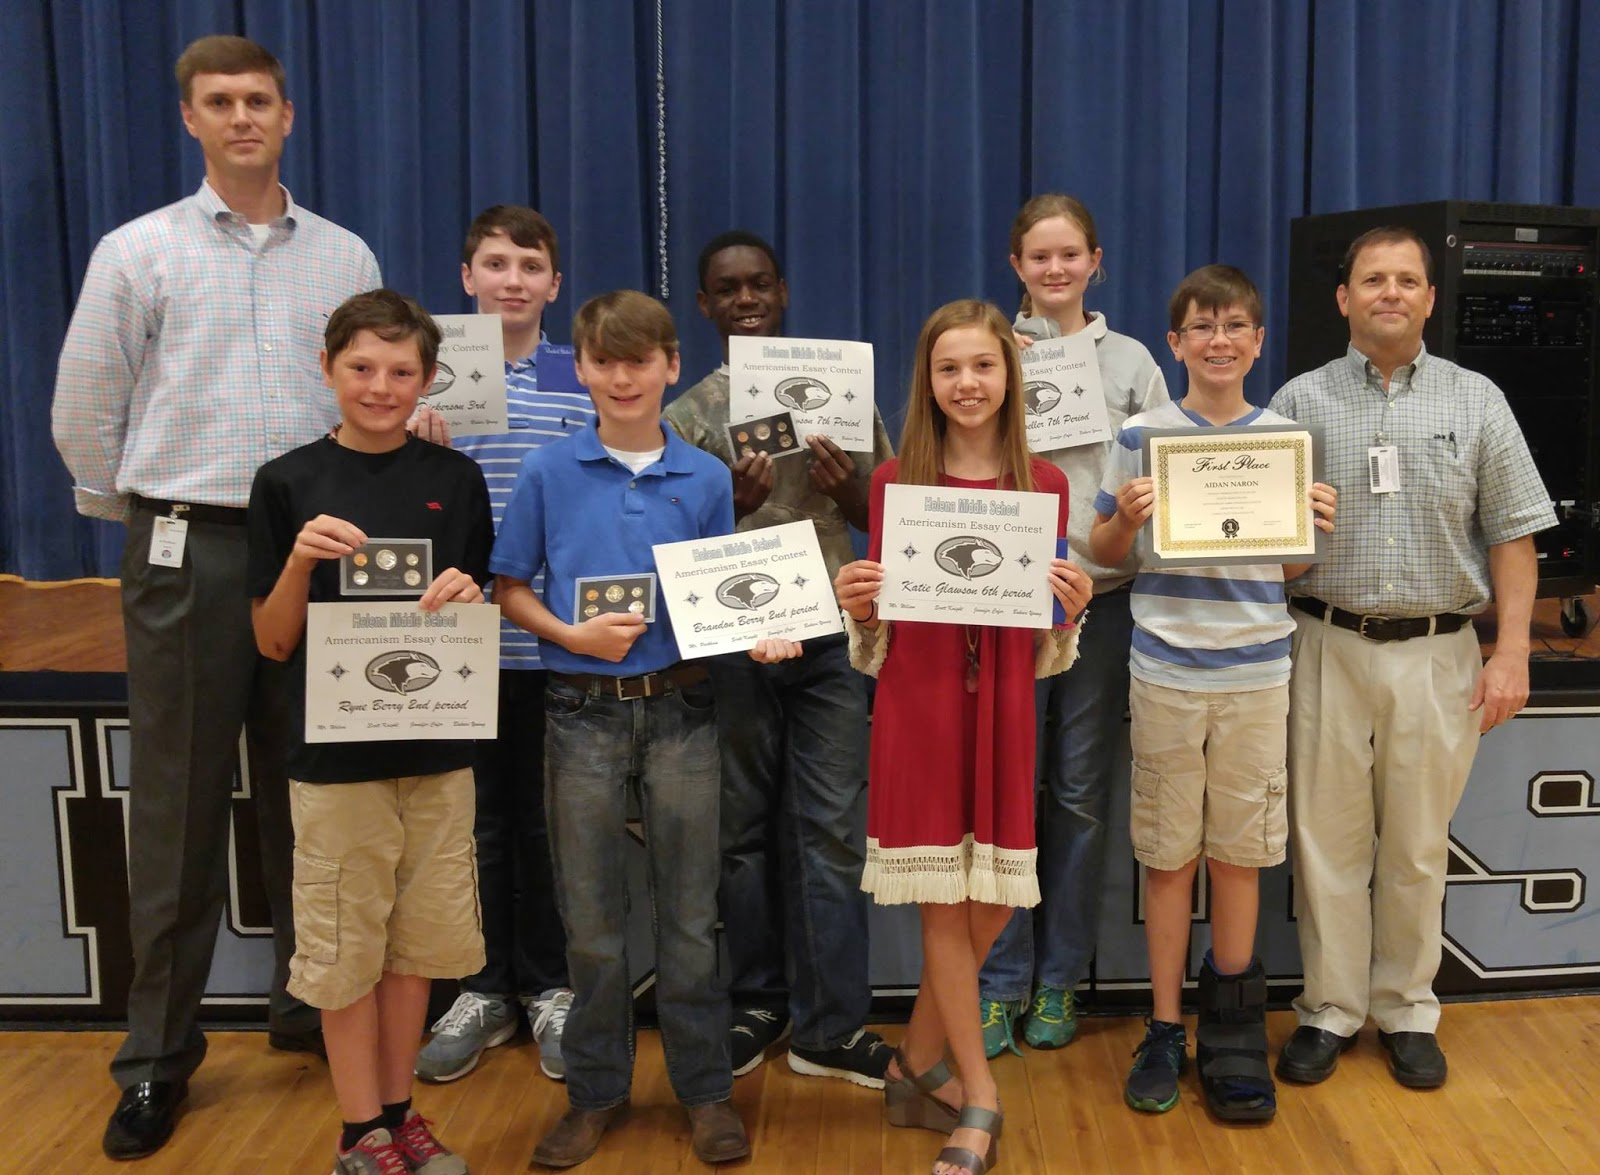 americanism essay winners Five middle school students from saint andrew's episcopal school have been recognized for their exceptional writing in the 2016-2017 fleet reserve association's (fra) americanism essay contest sponsored locally by fra branch 101 svc, more than 400 students from across the santa clara valley submitted essays.